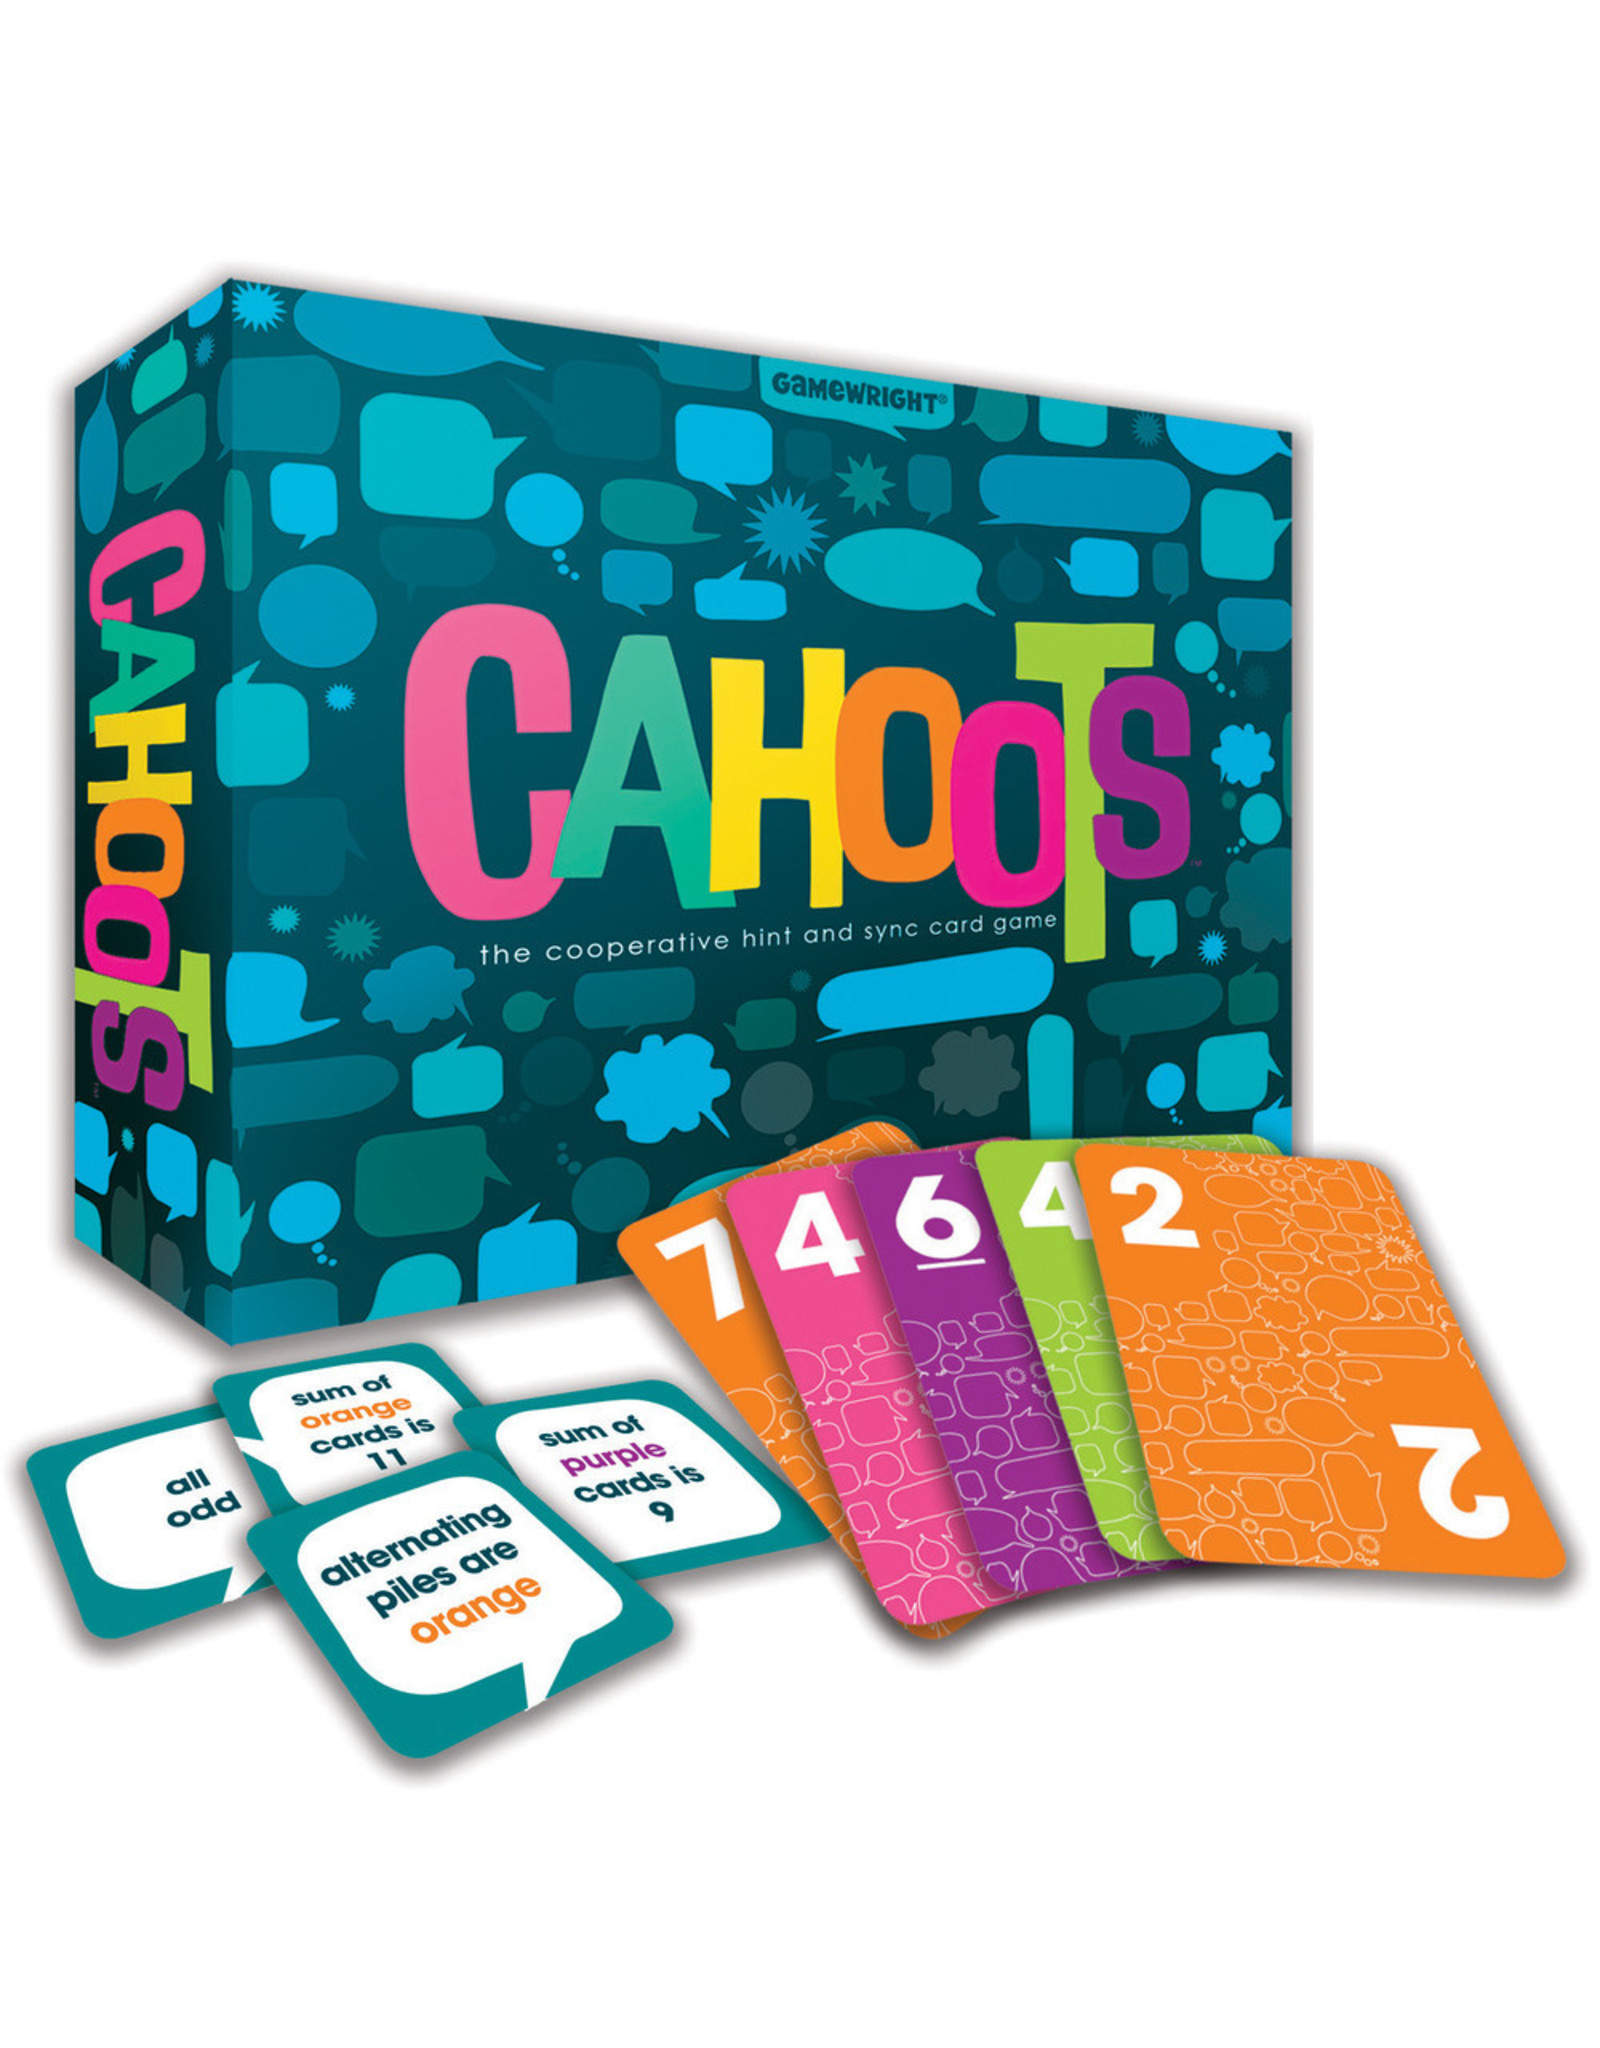 Gamewright cahoots gamewright